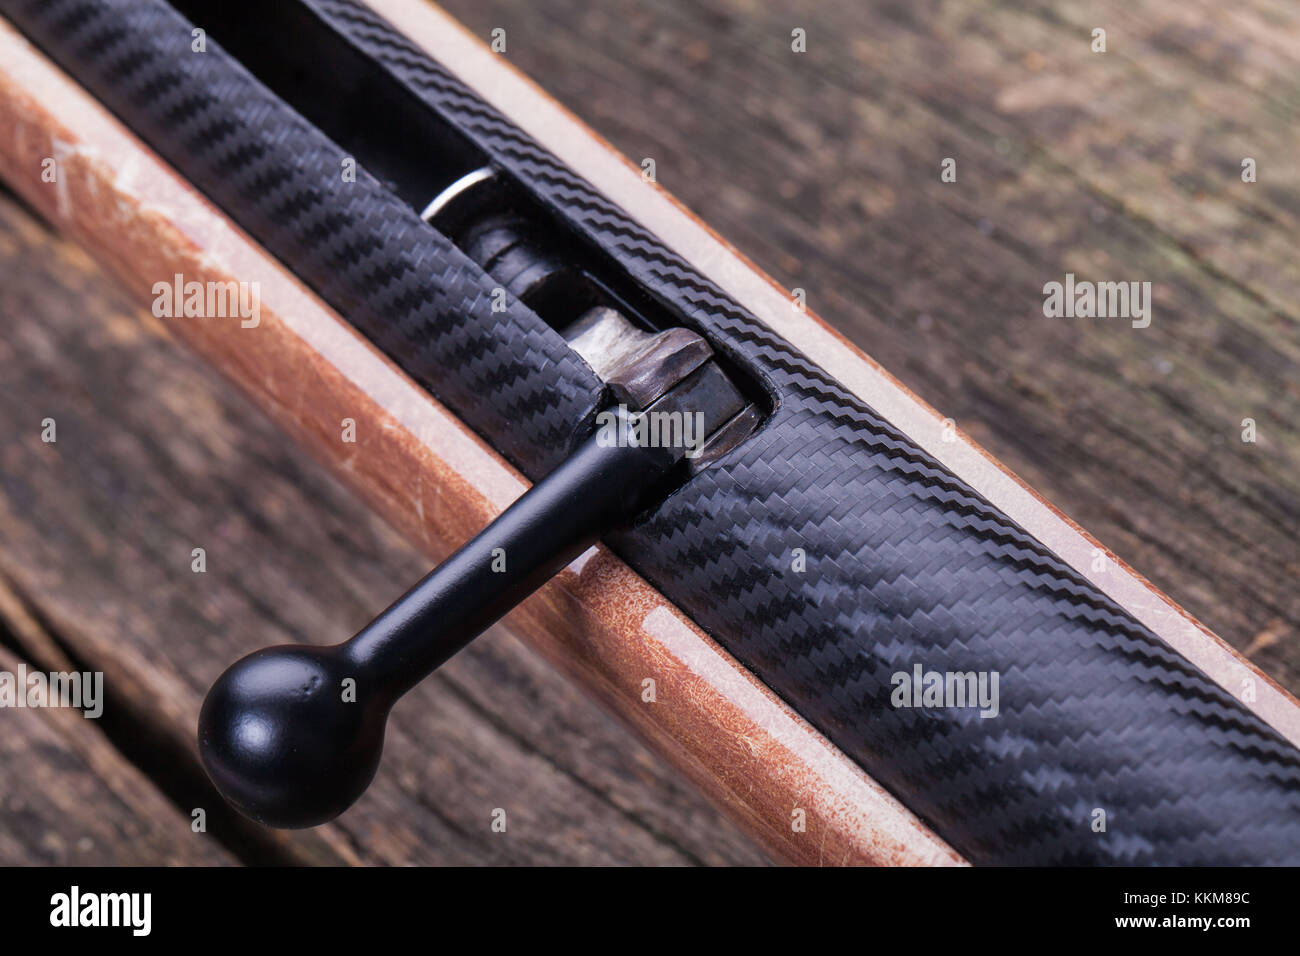 Airgun, clamping lever - Stock Image